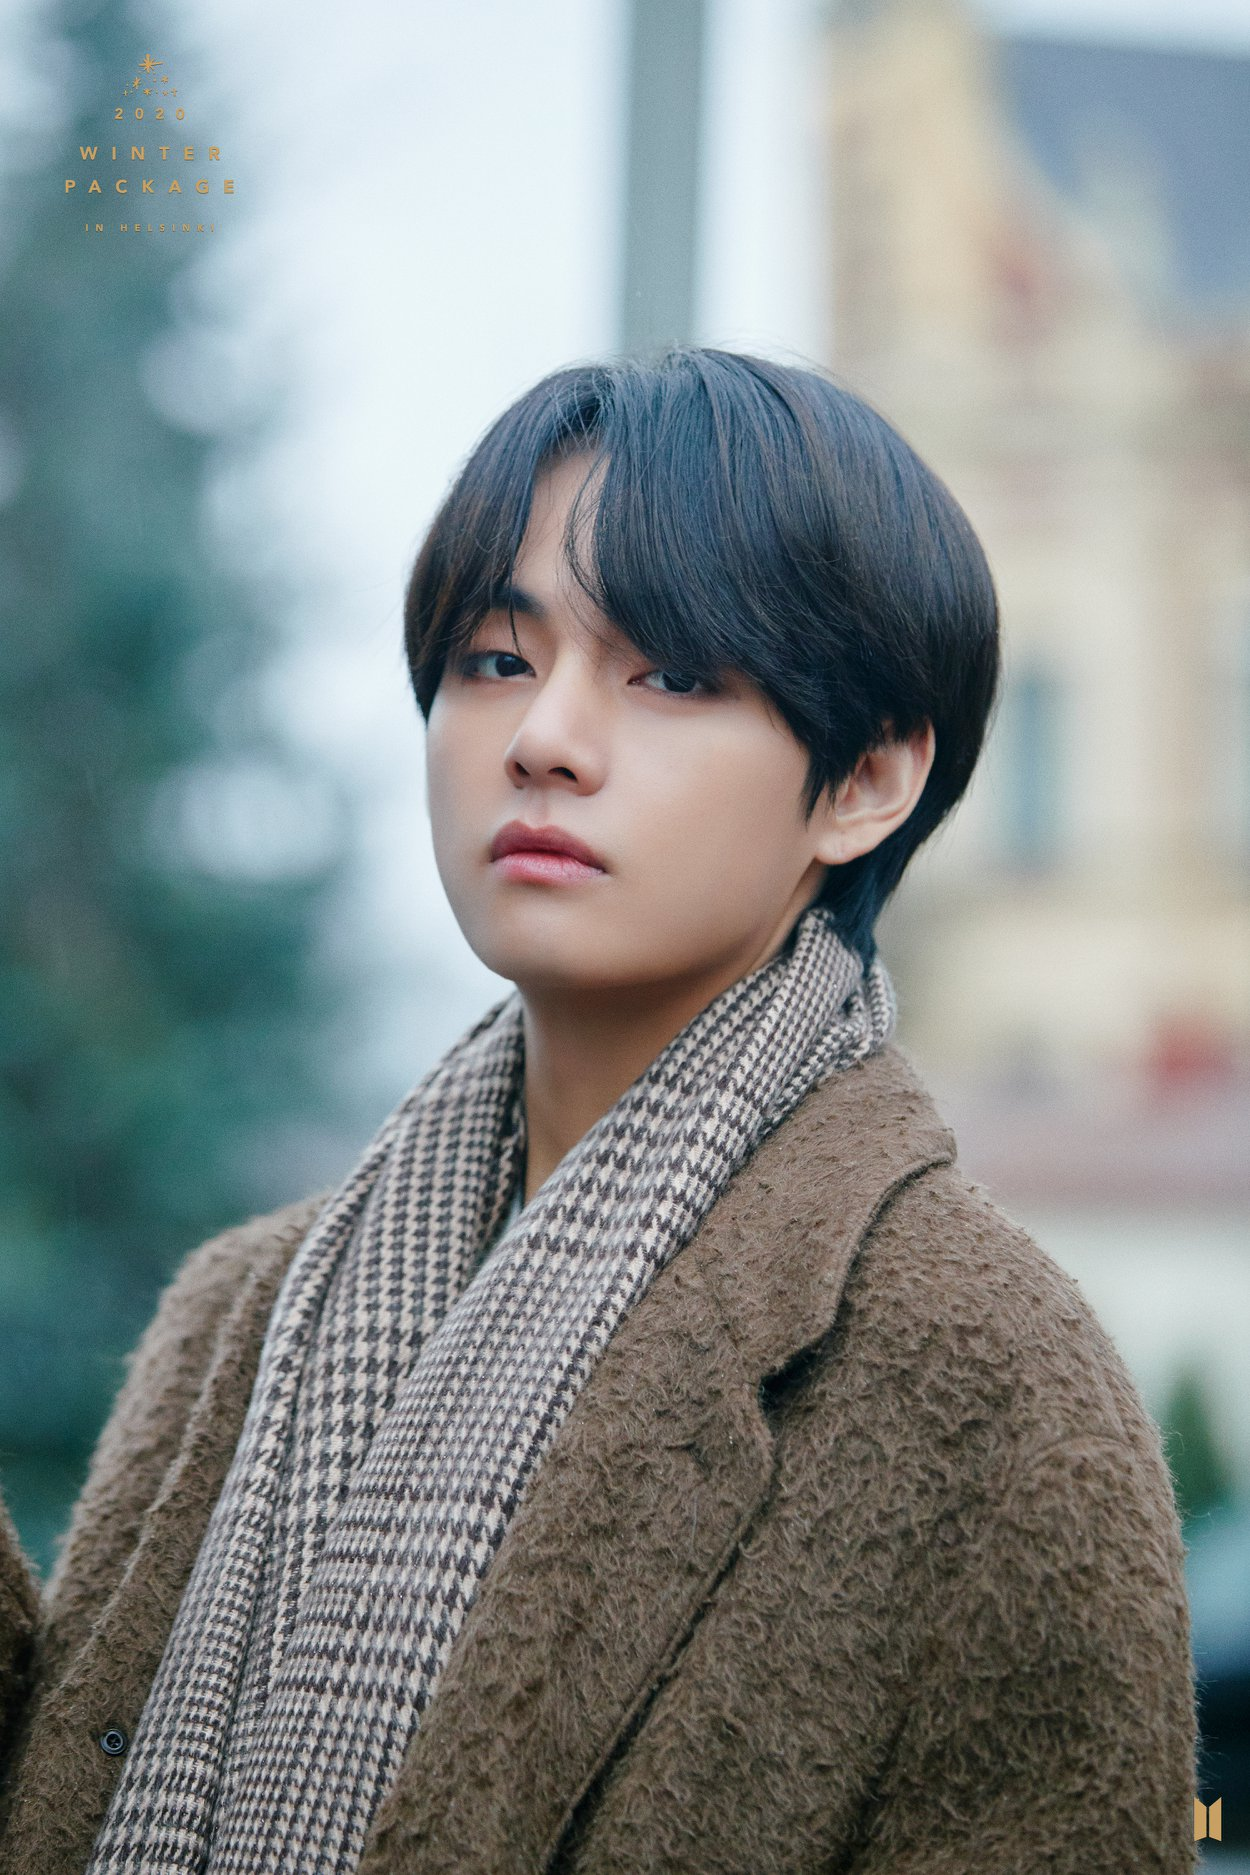 BTS Winter Package Preview V 2